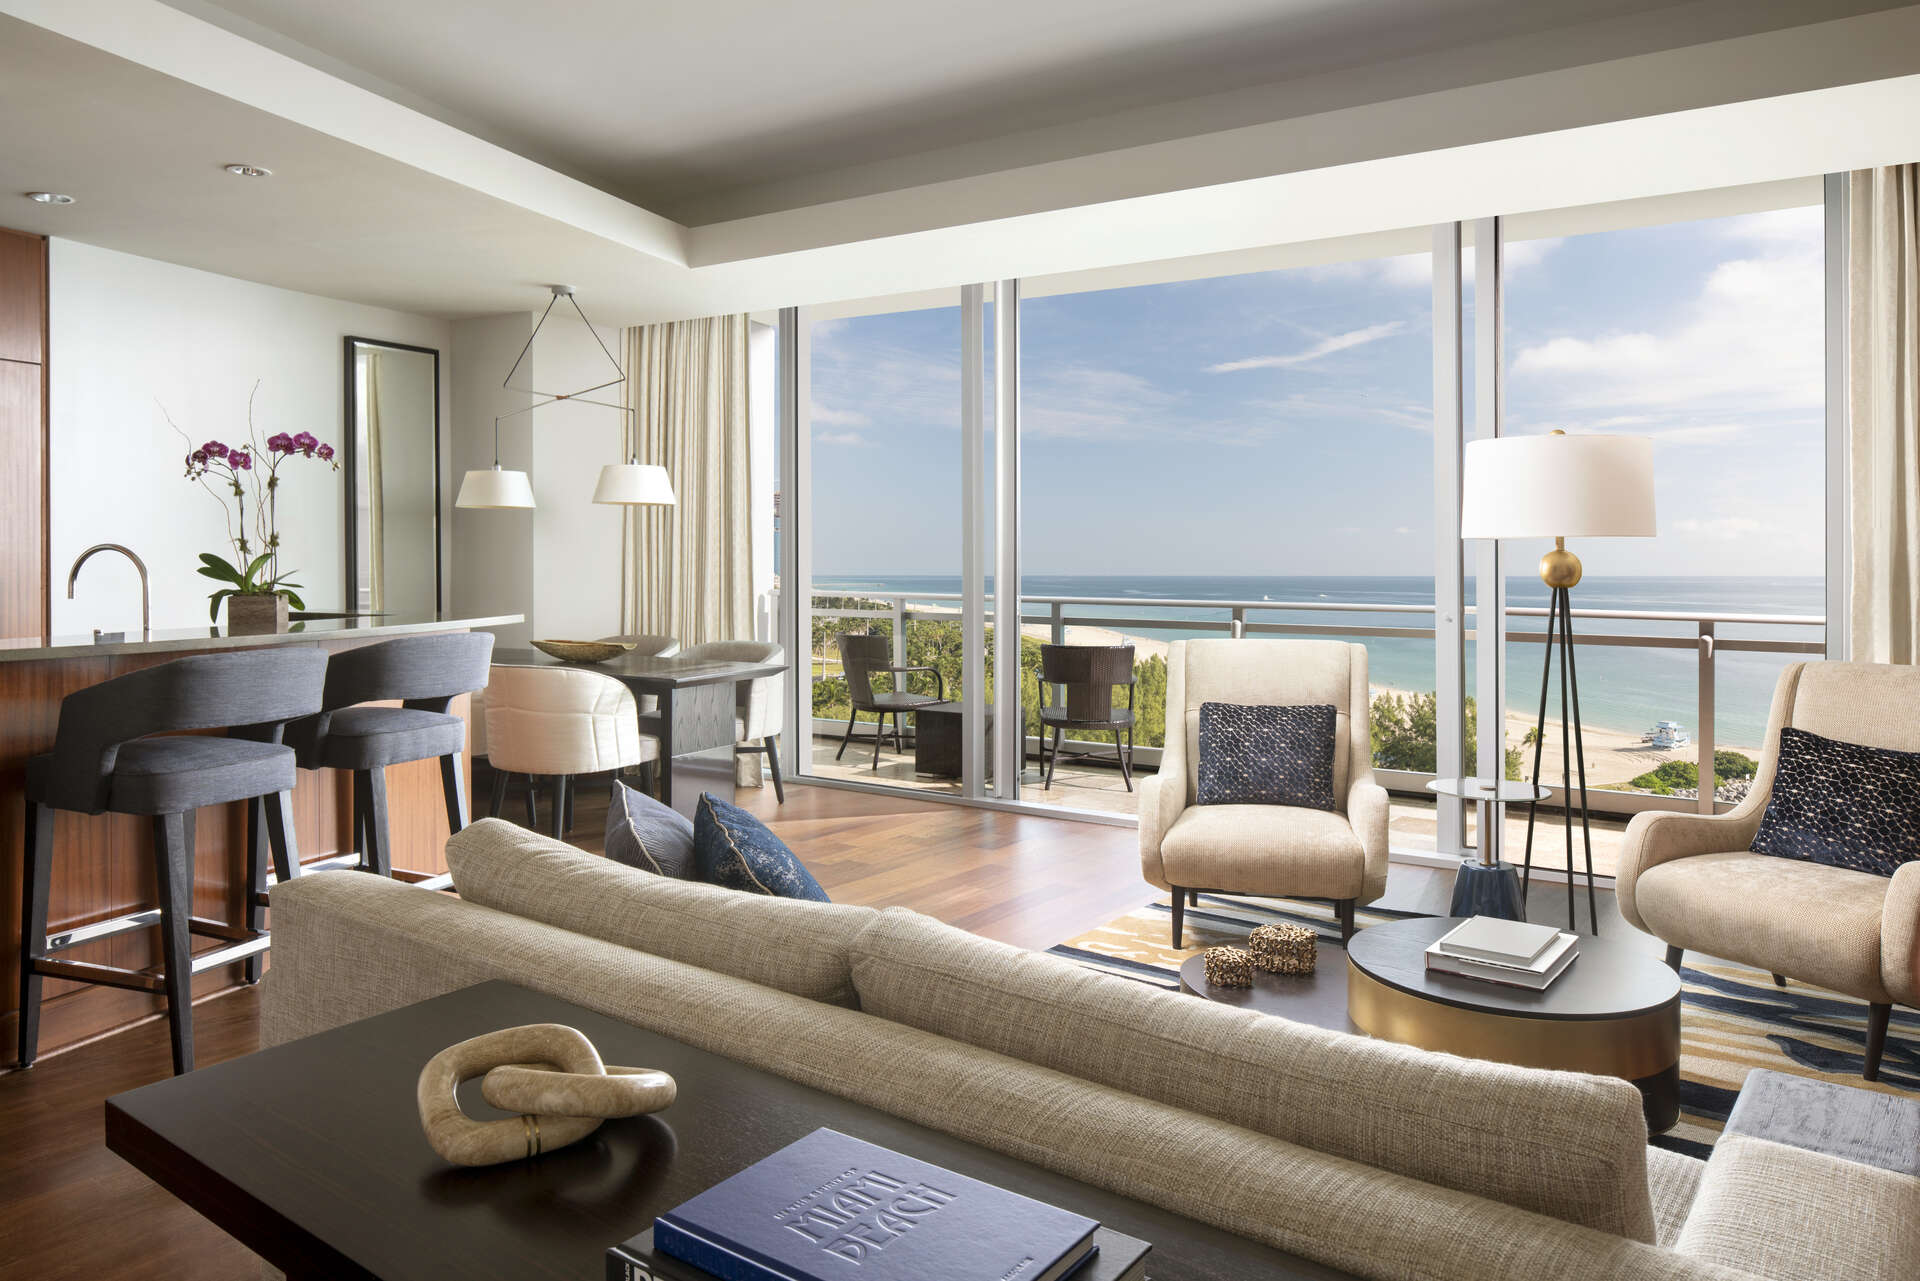 Luxury vacation rentals usa - Florida - Miami beach - Ritz carlton bal harbour - Oceanfront 2 BDM Suite - Image 1/16